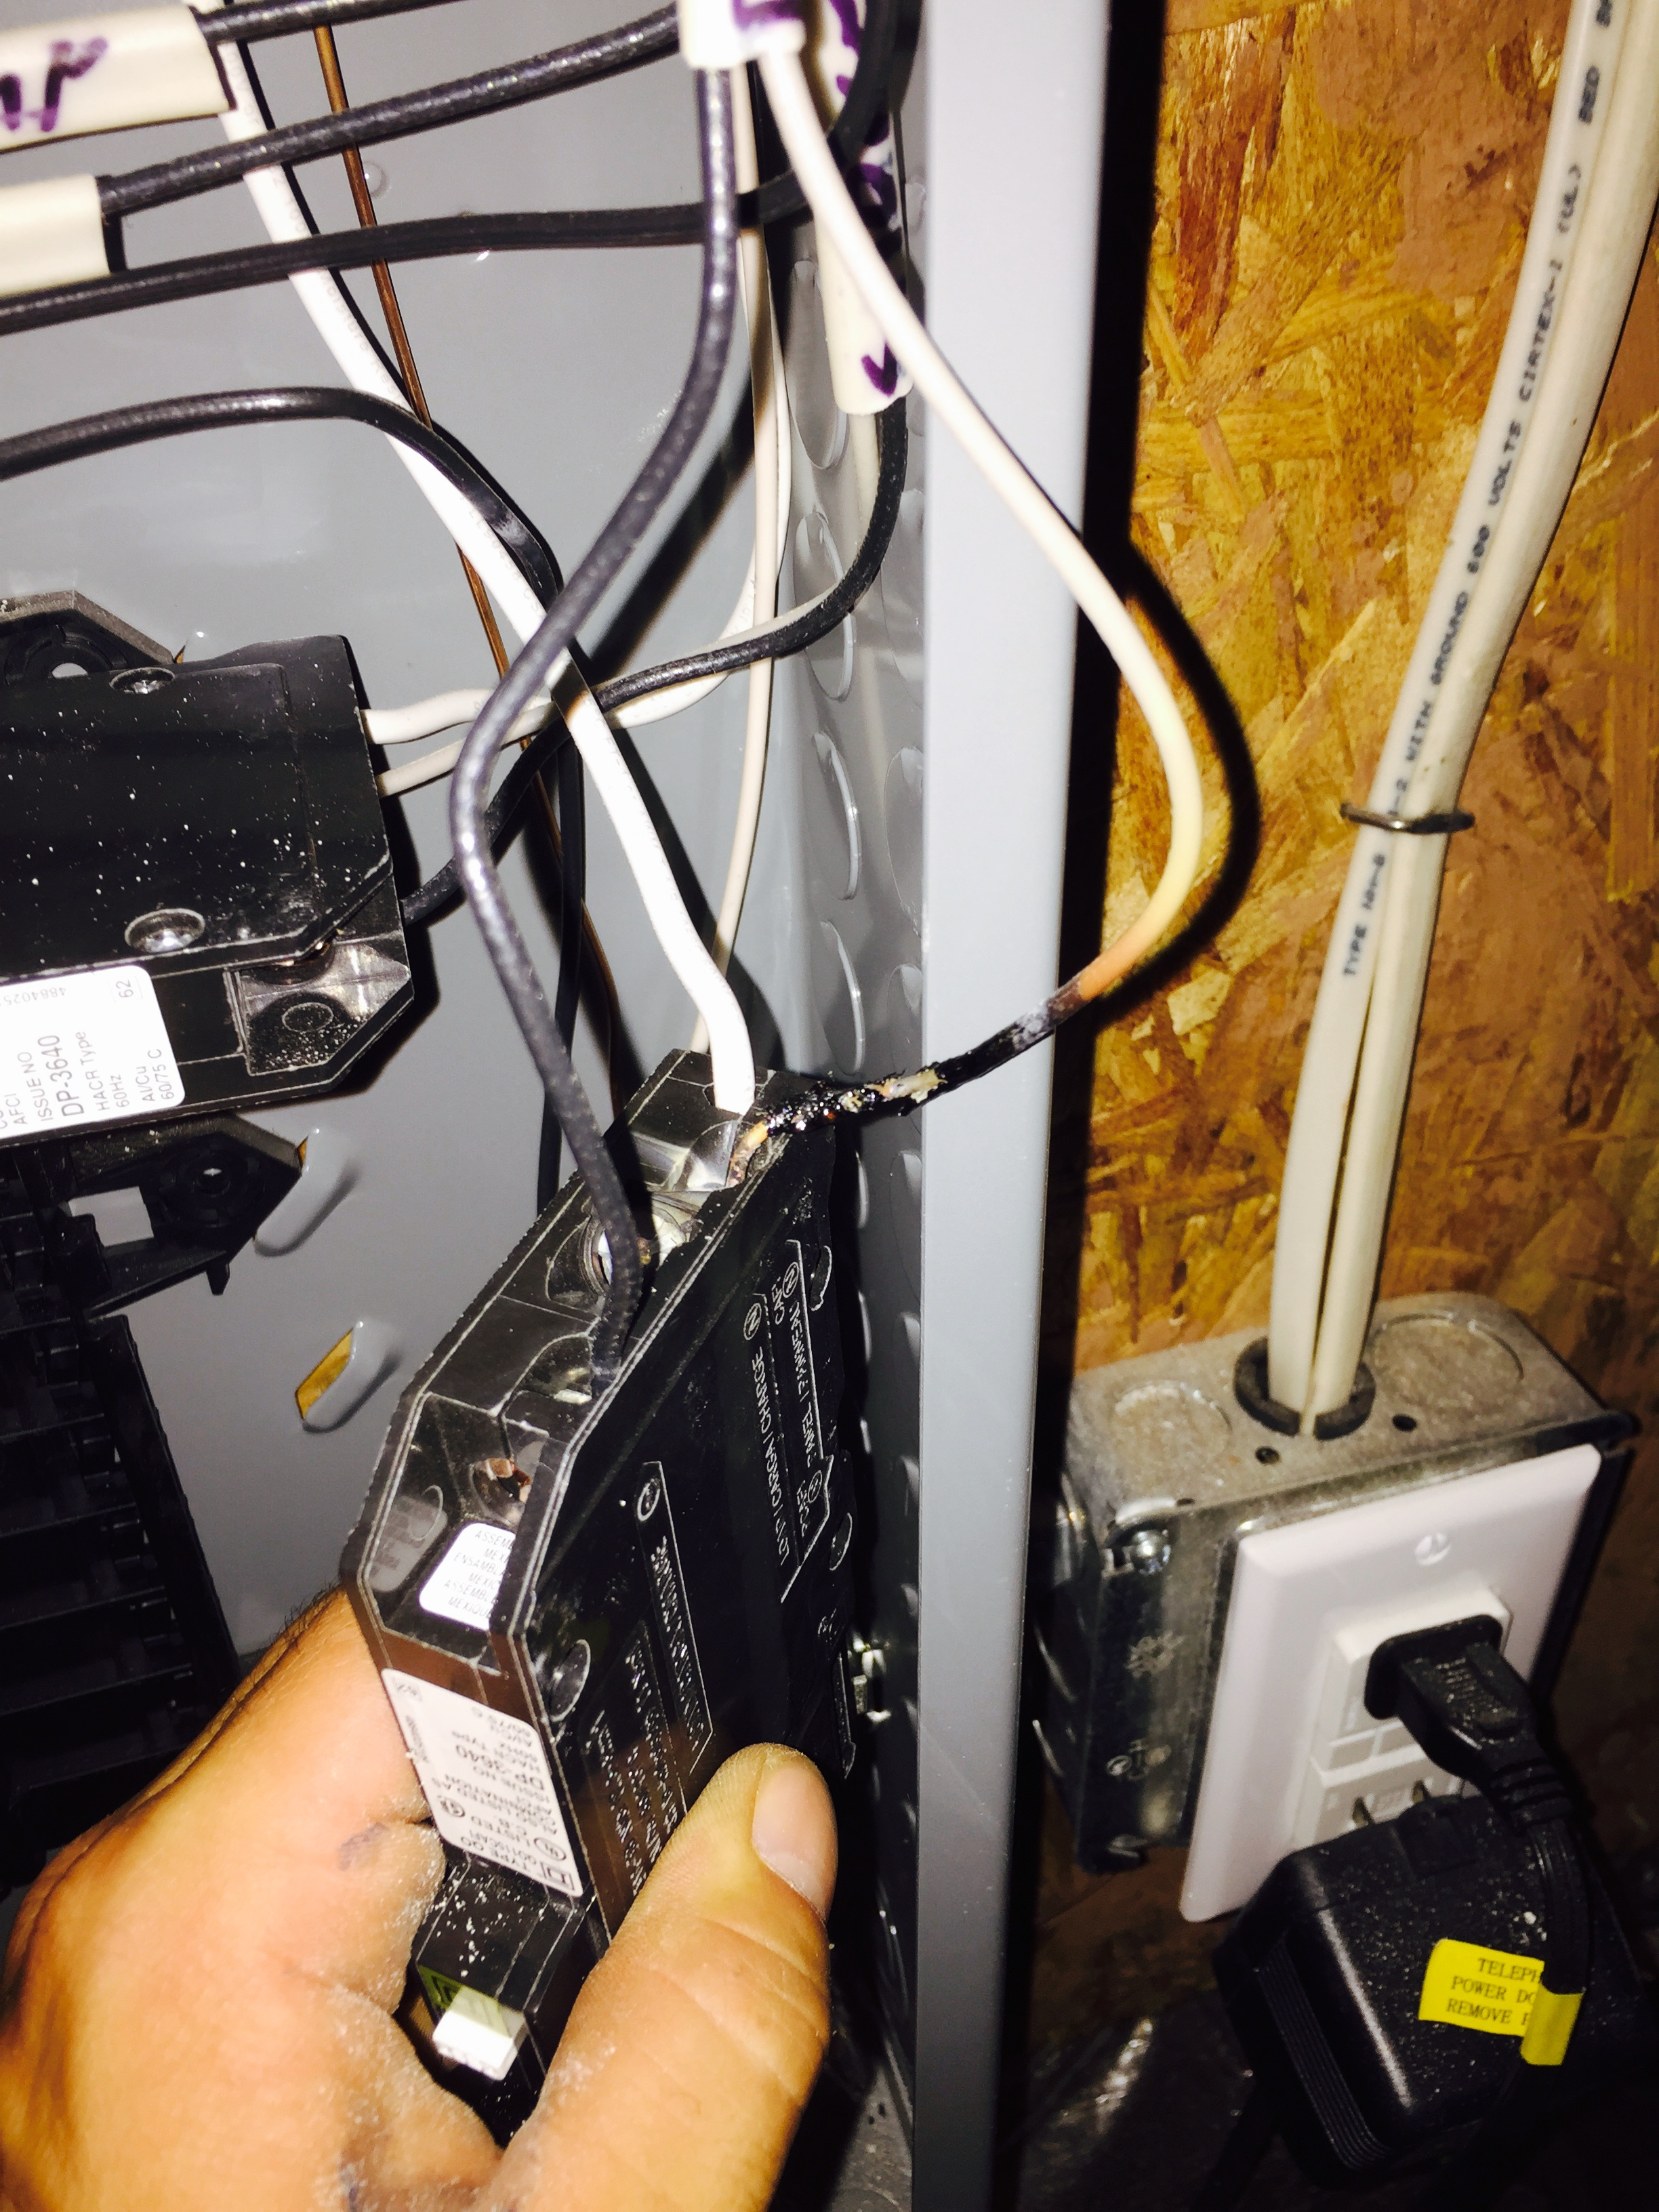 Electrical Fires: Causes and Prevention For Home Safety